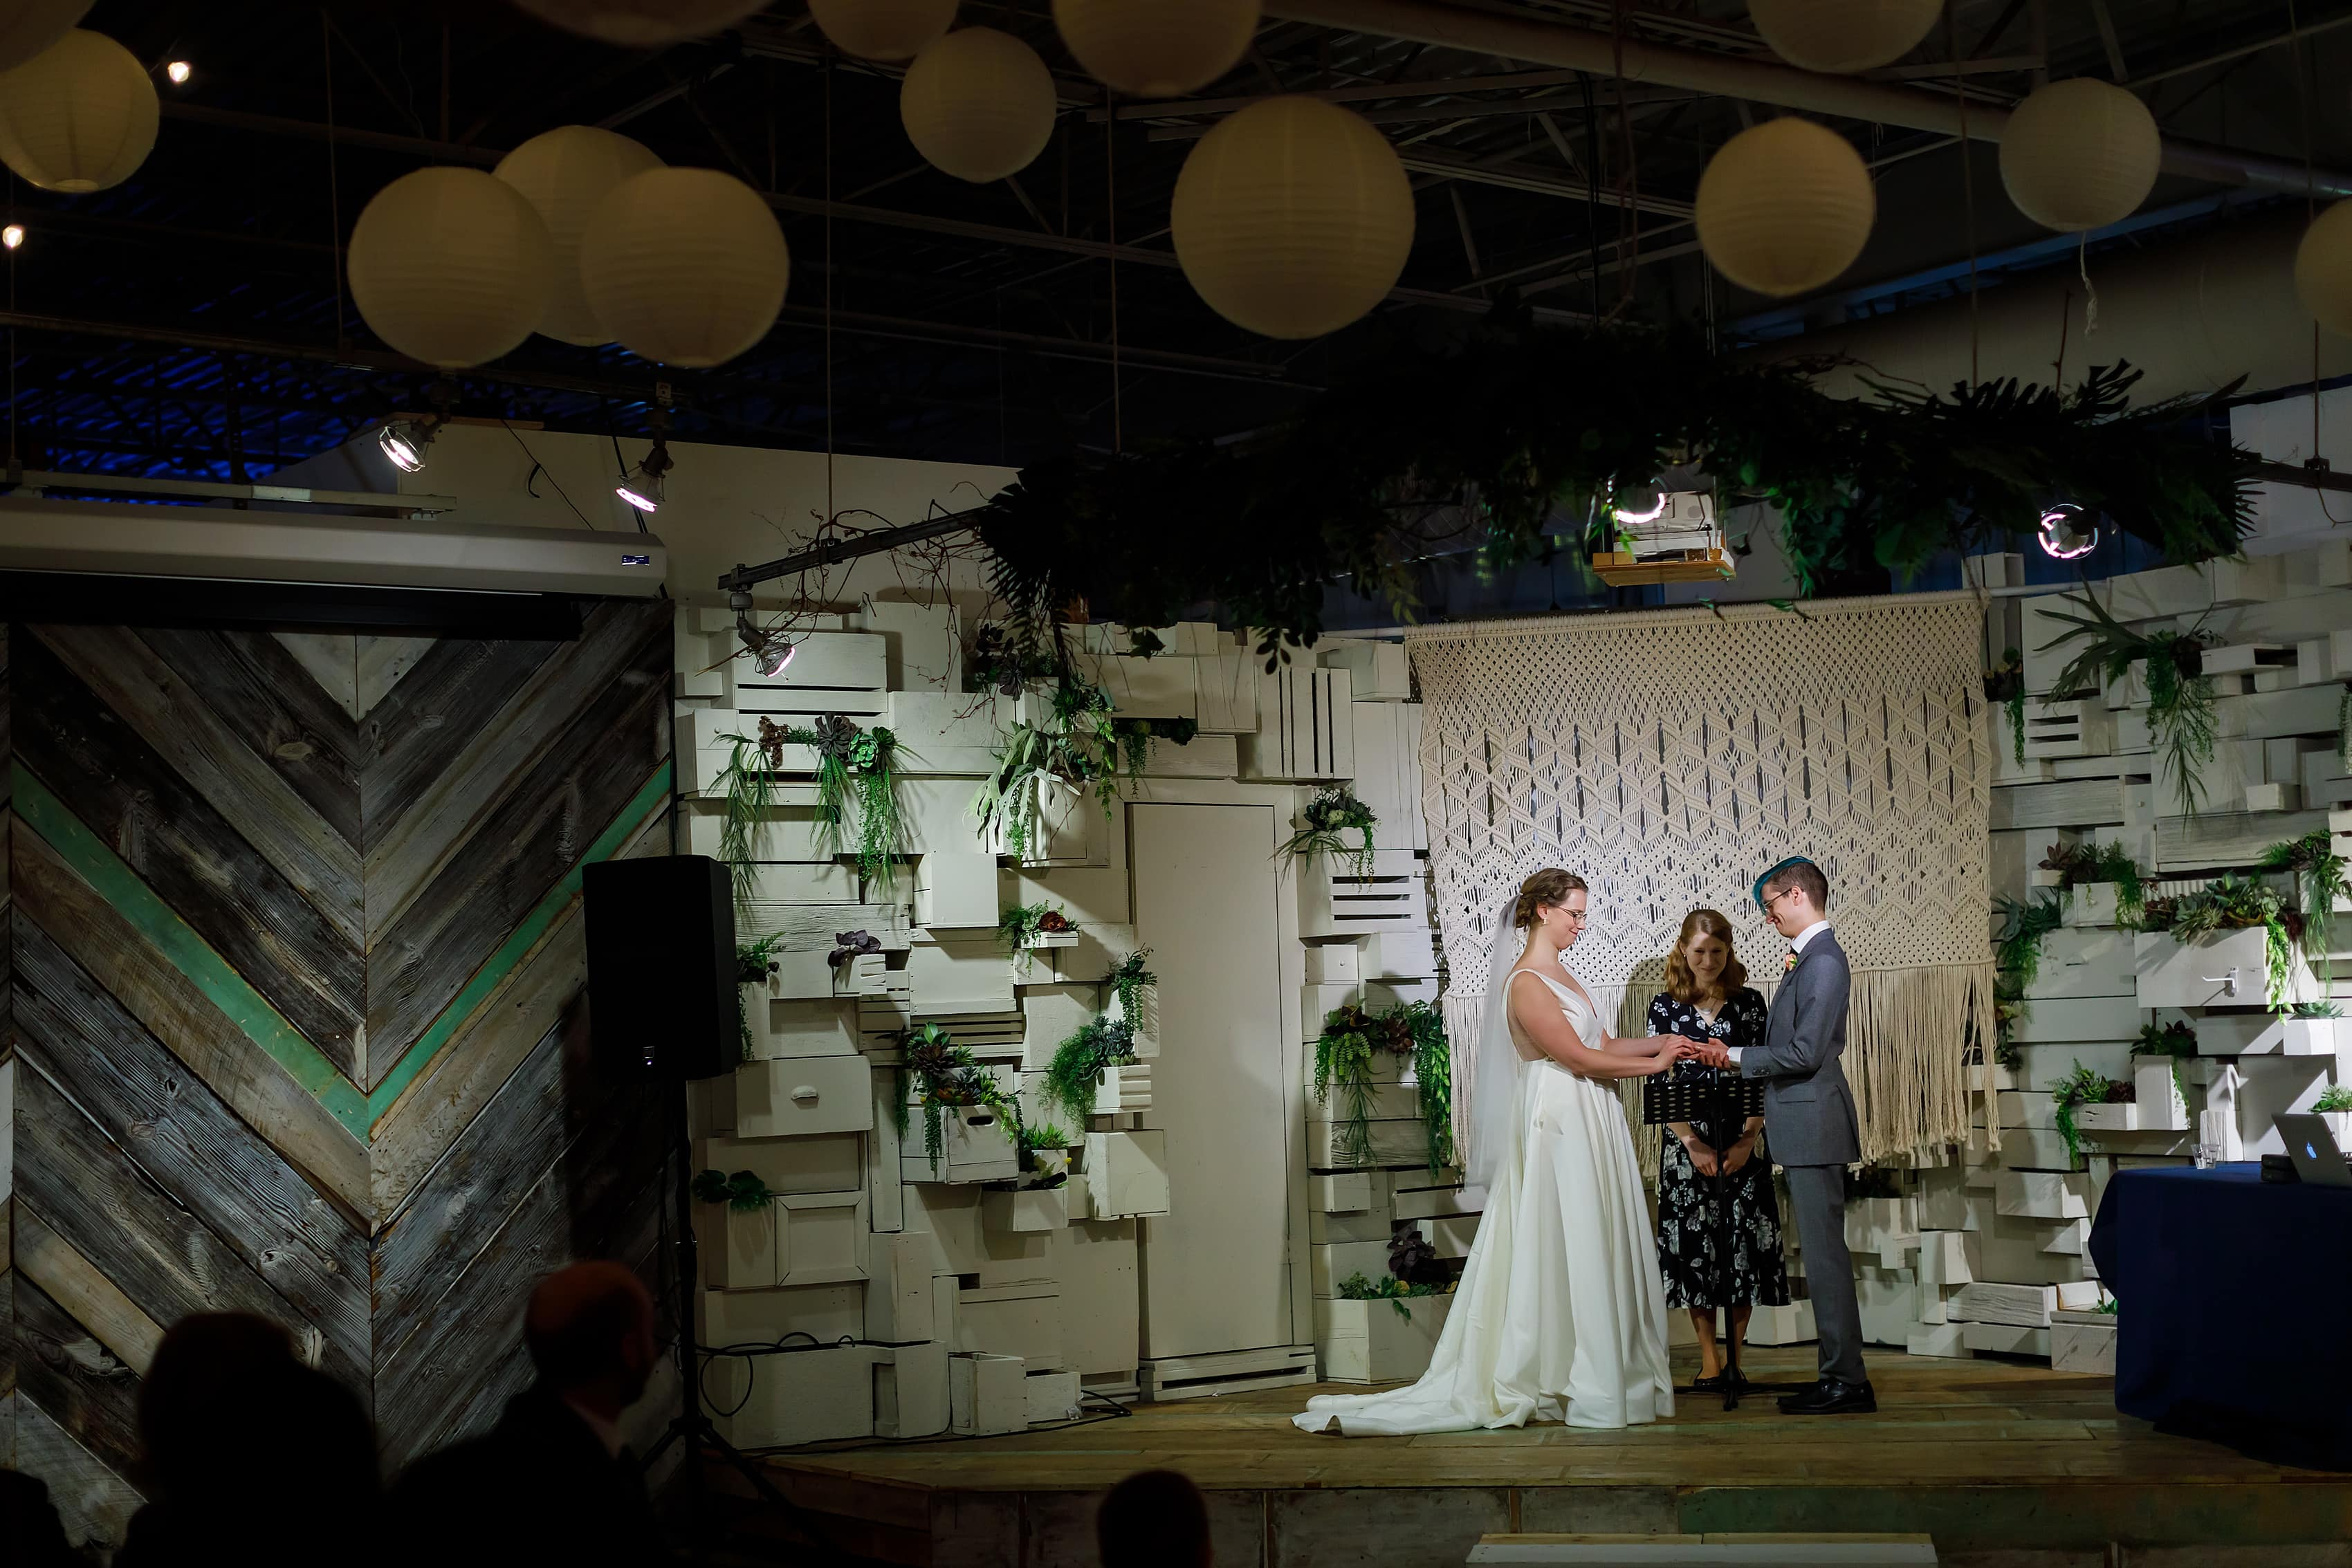 bride and groom exchange vows during wedding ceremony at Rust Belt Market in downtown Ferndale, Michigan